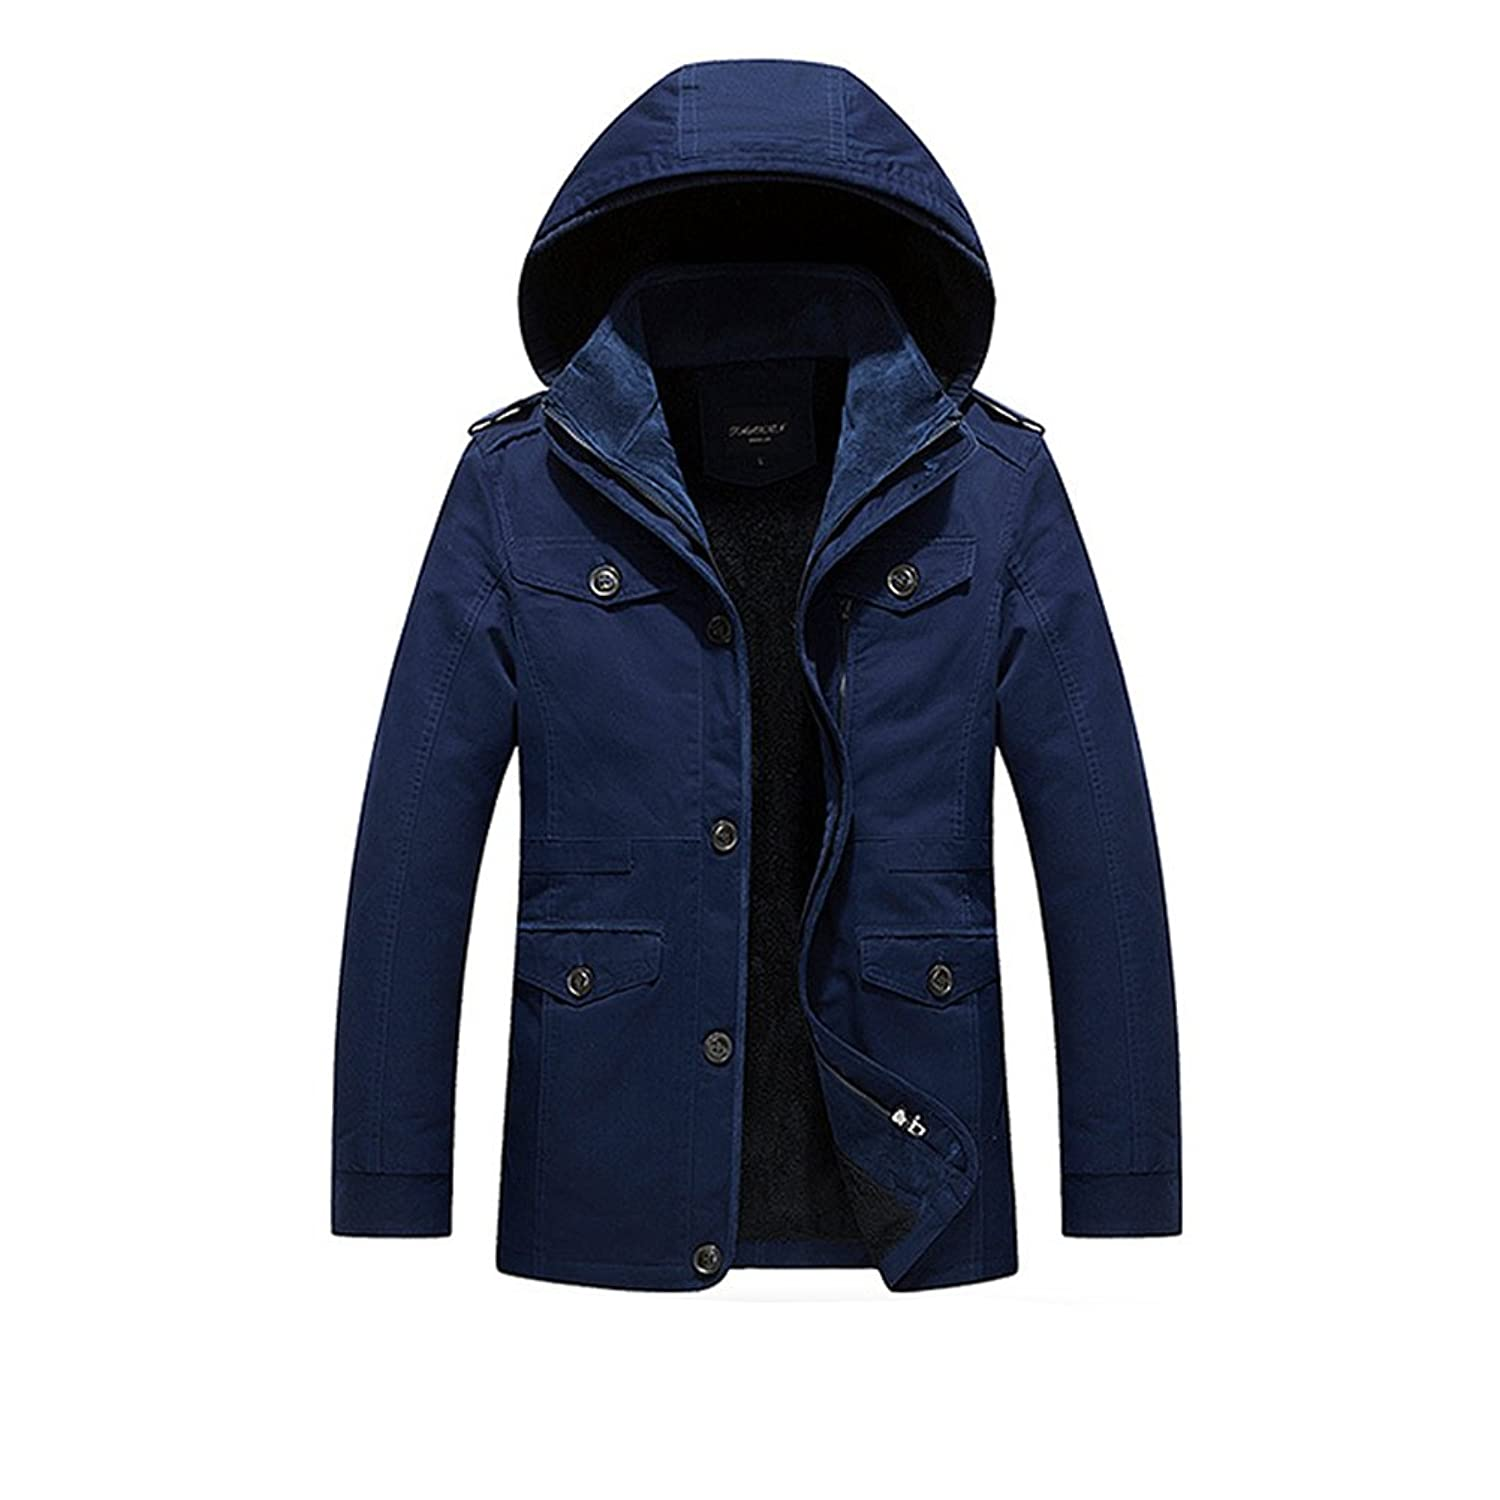 Zhhlinyuan Men's Winter Detachable Hooded Faux Fur Lined Warm Coats Outerwear